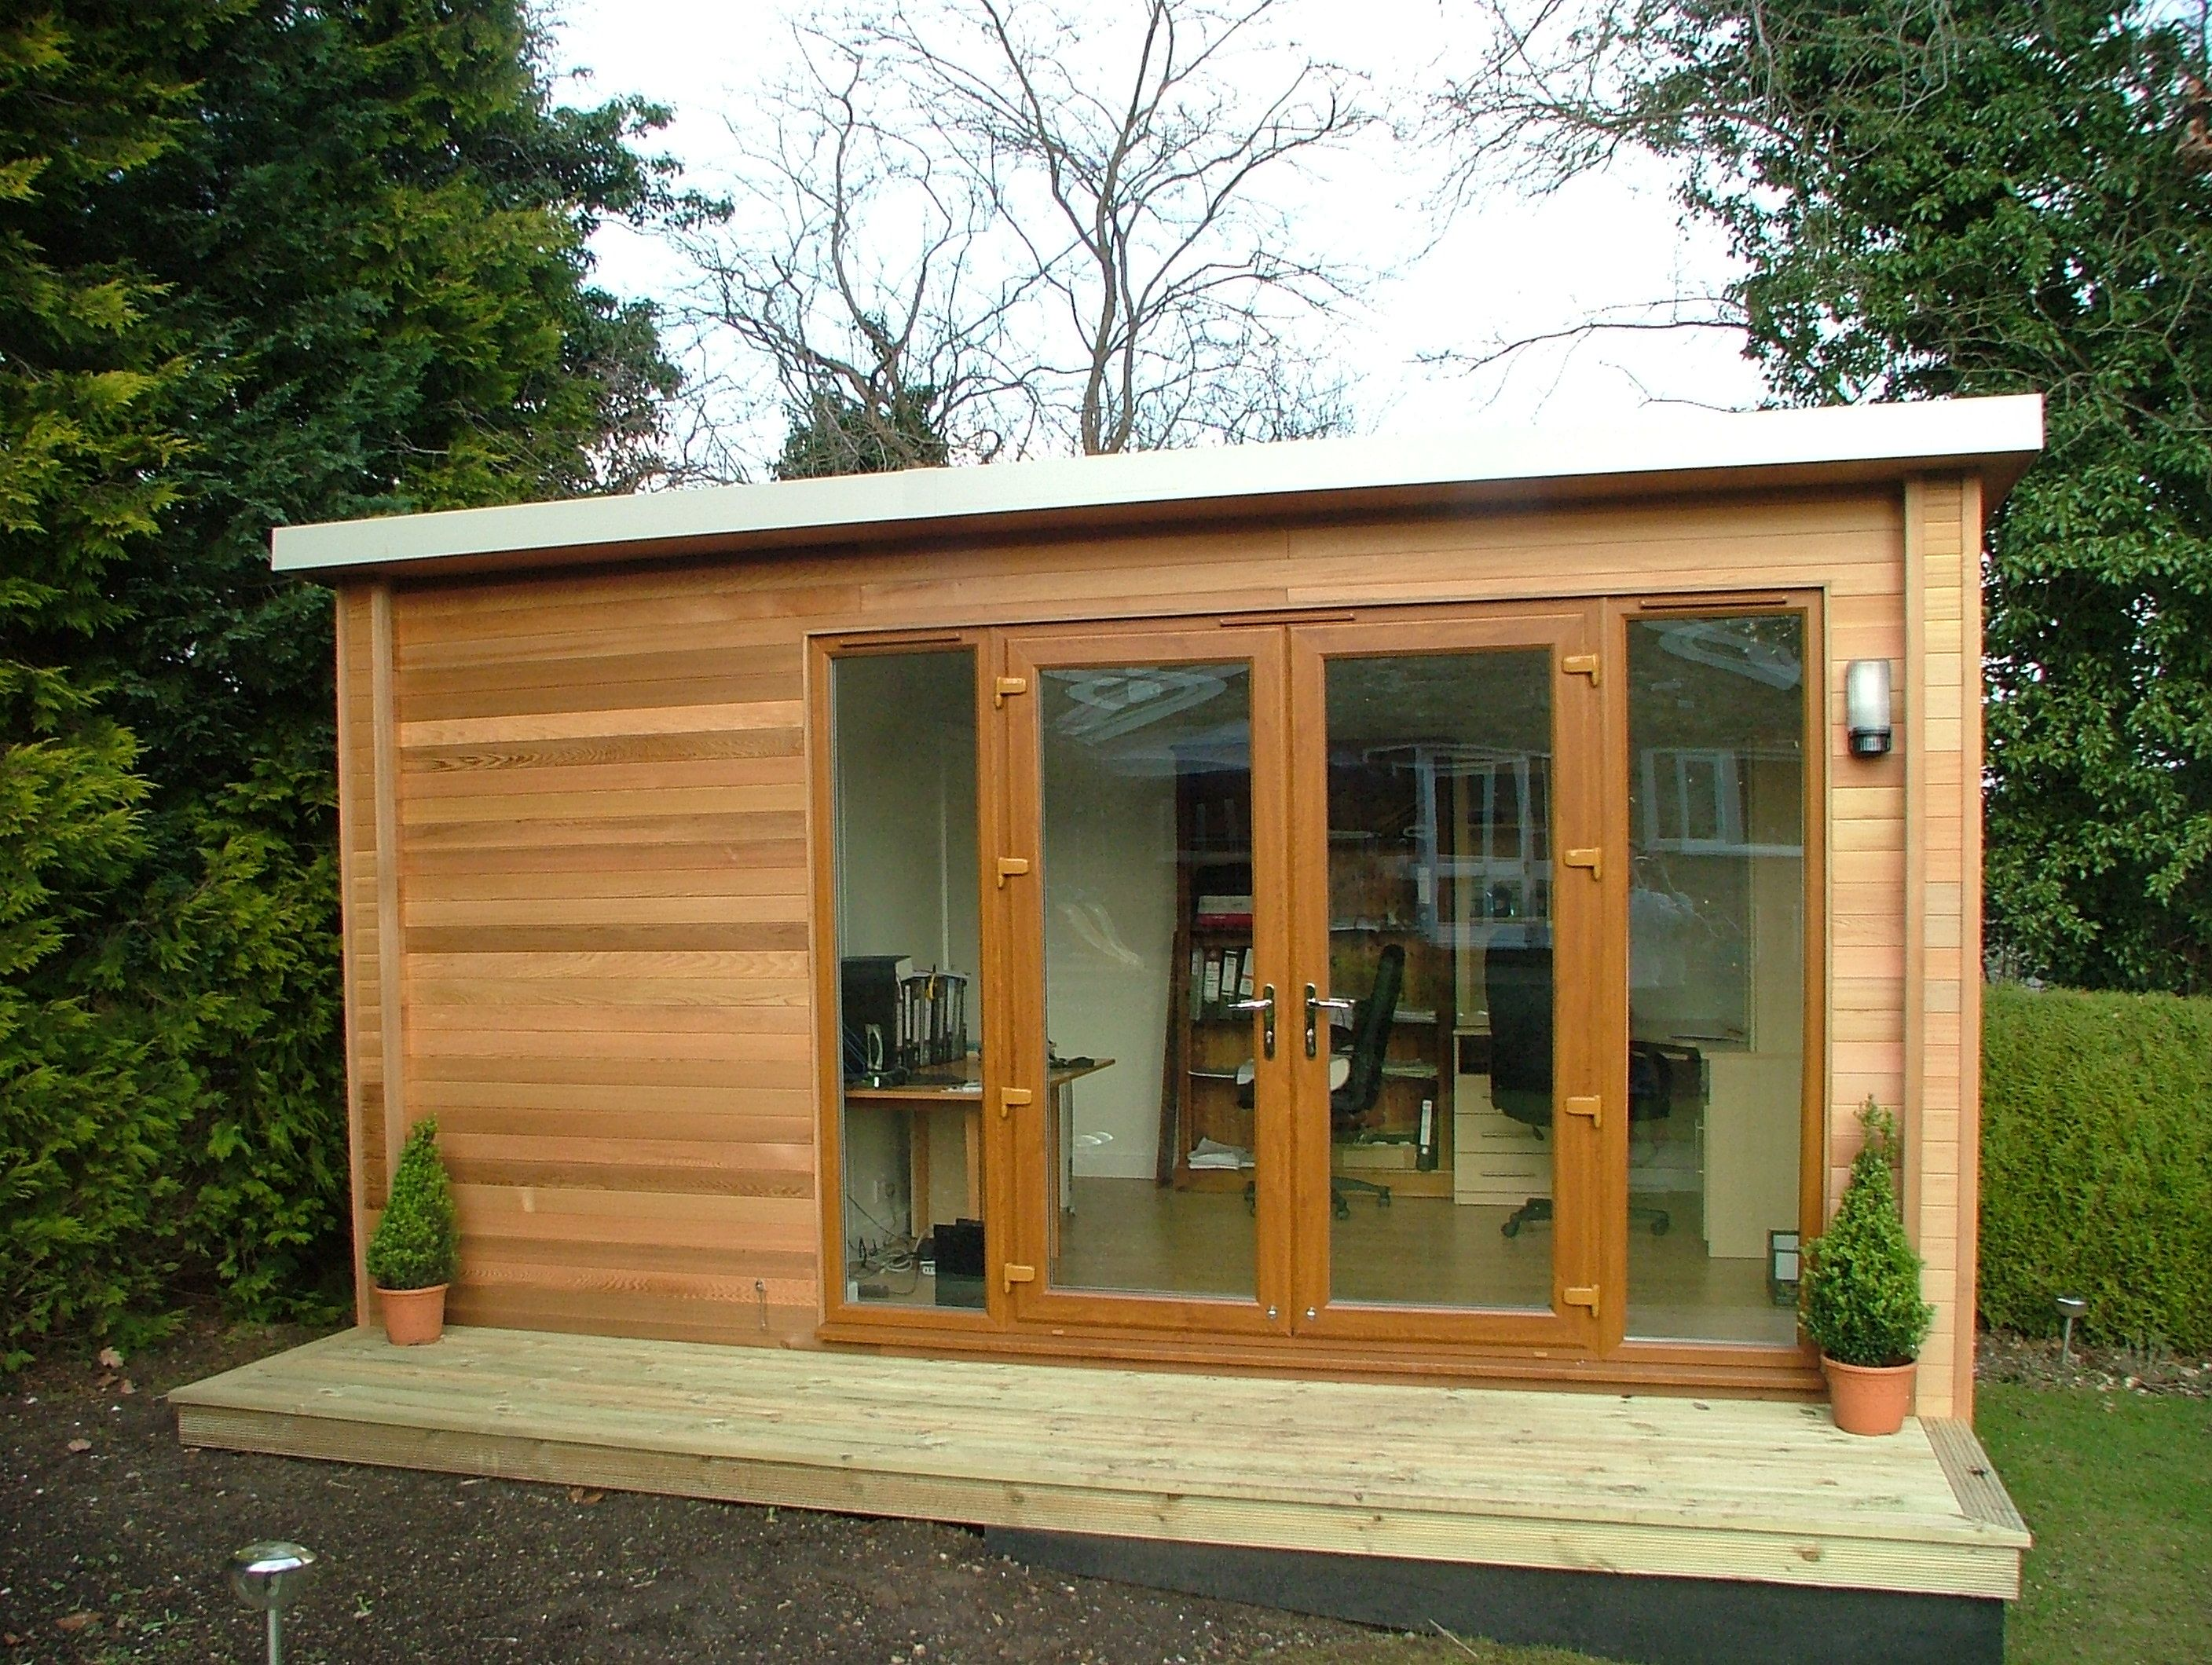 Home garden office with a flat roof and upvc french doors for Garden office and shed